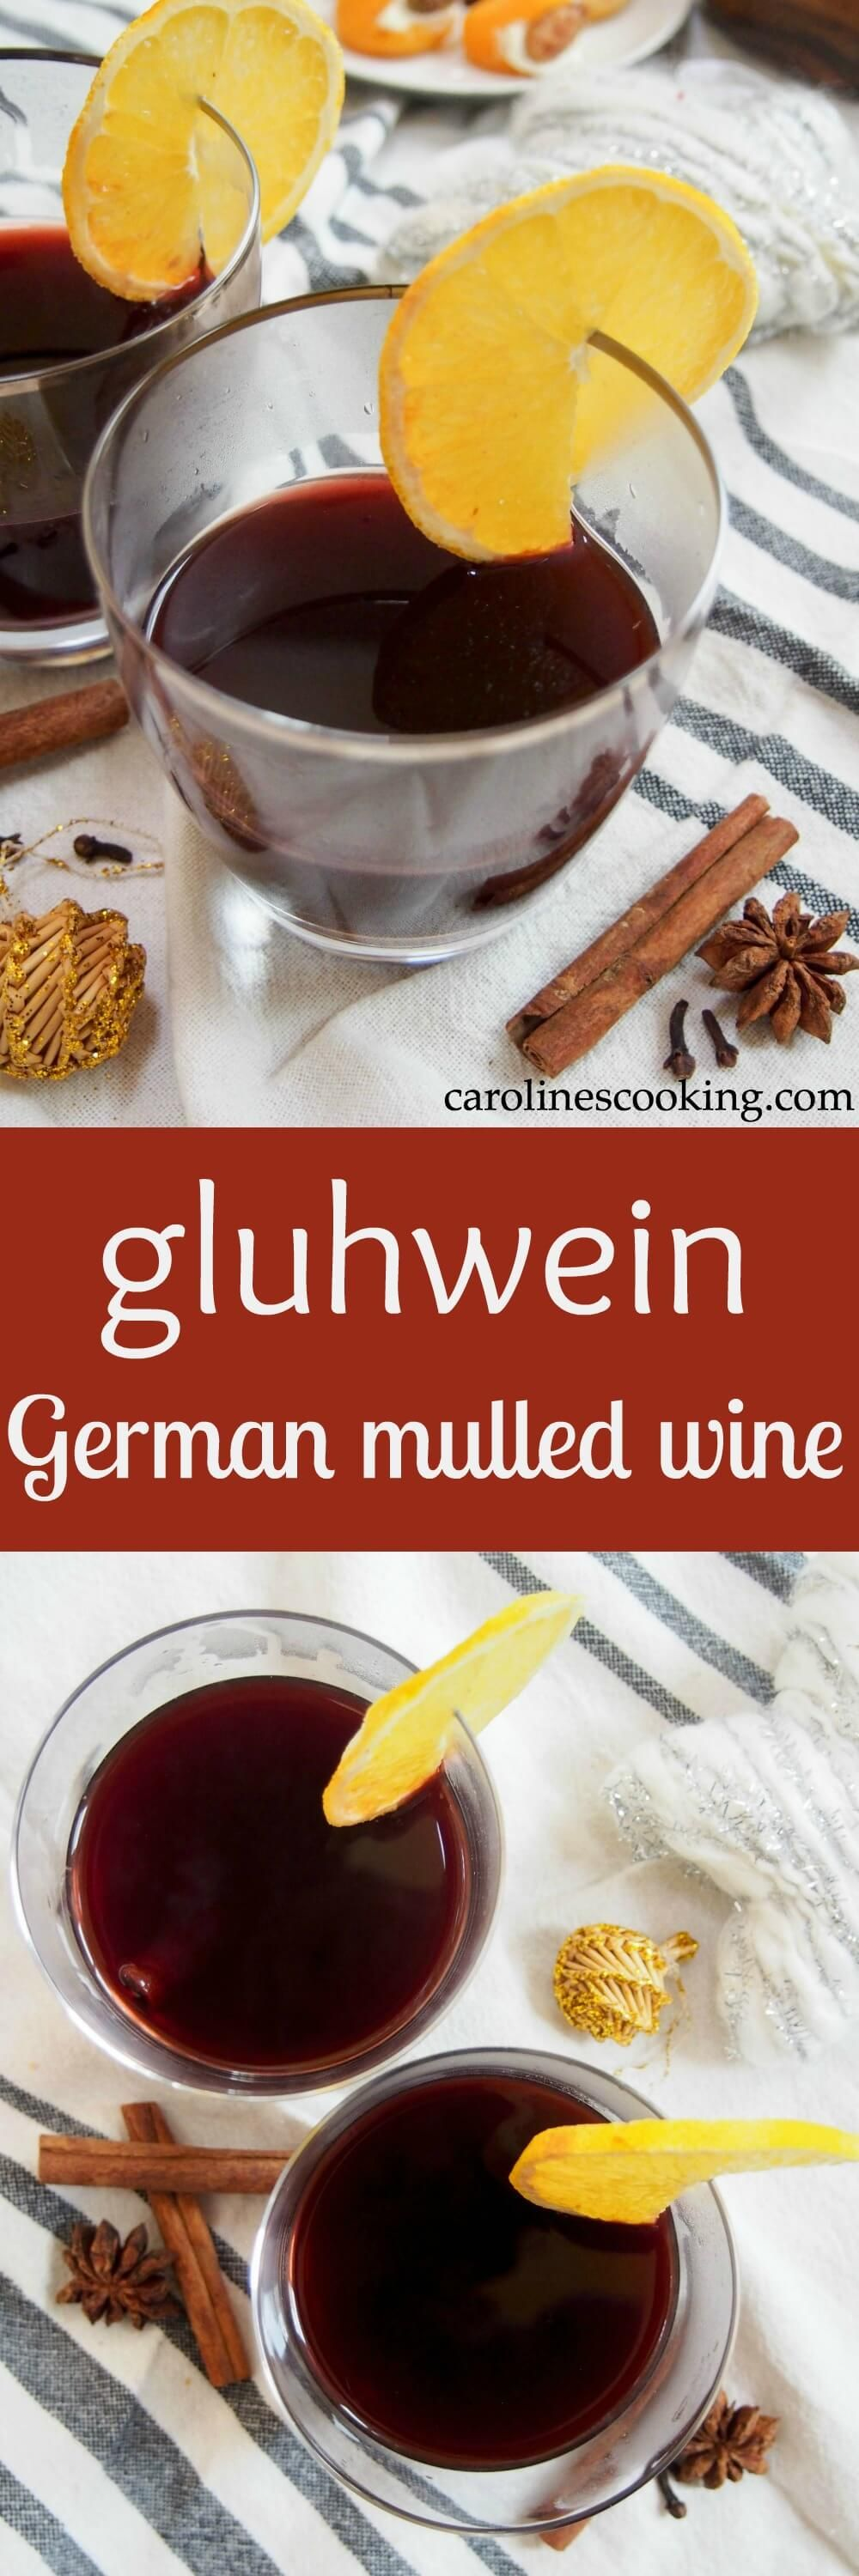 Gluhwein German Mulled Wine Is A Gently Sweet Warmly Spiced Drink As Found At Christmas Markets It S Perfect For S Mulled Wine Delicious Drink Recipes Food